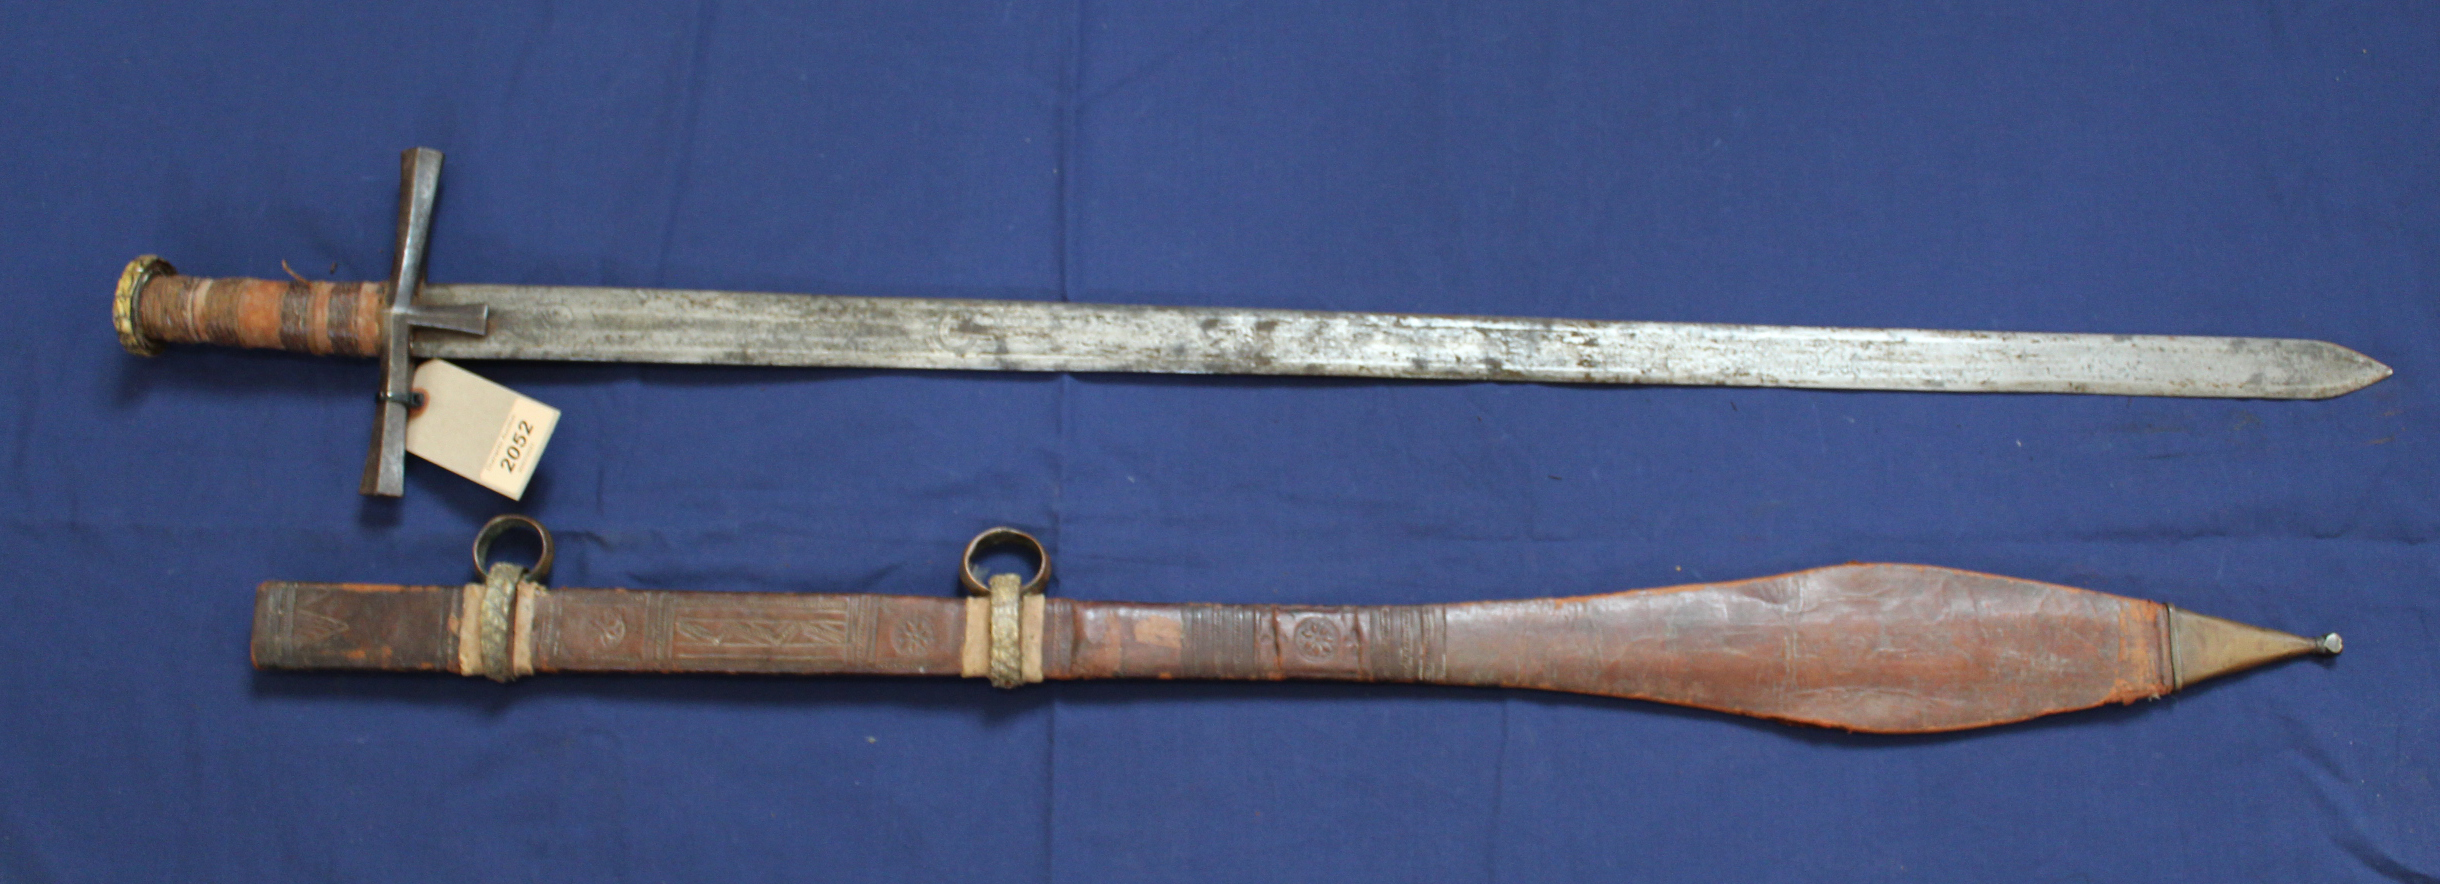 An ethnic sword with leather tooled scabbard